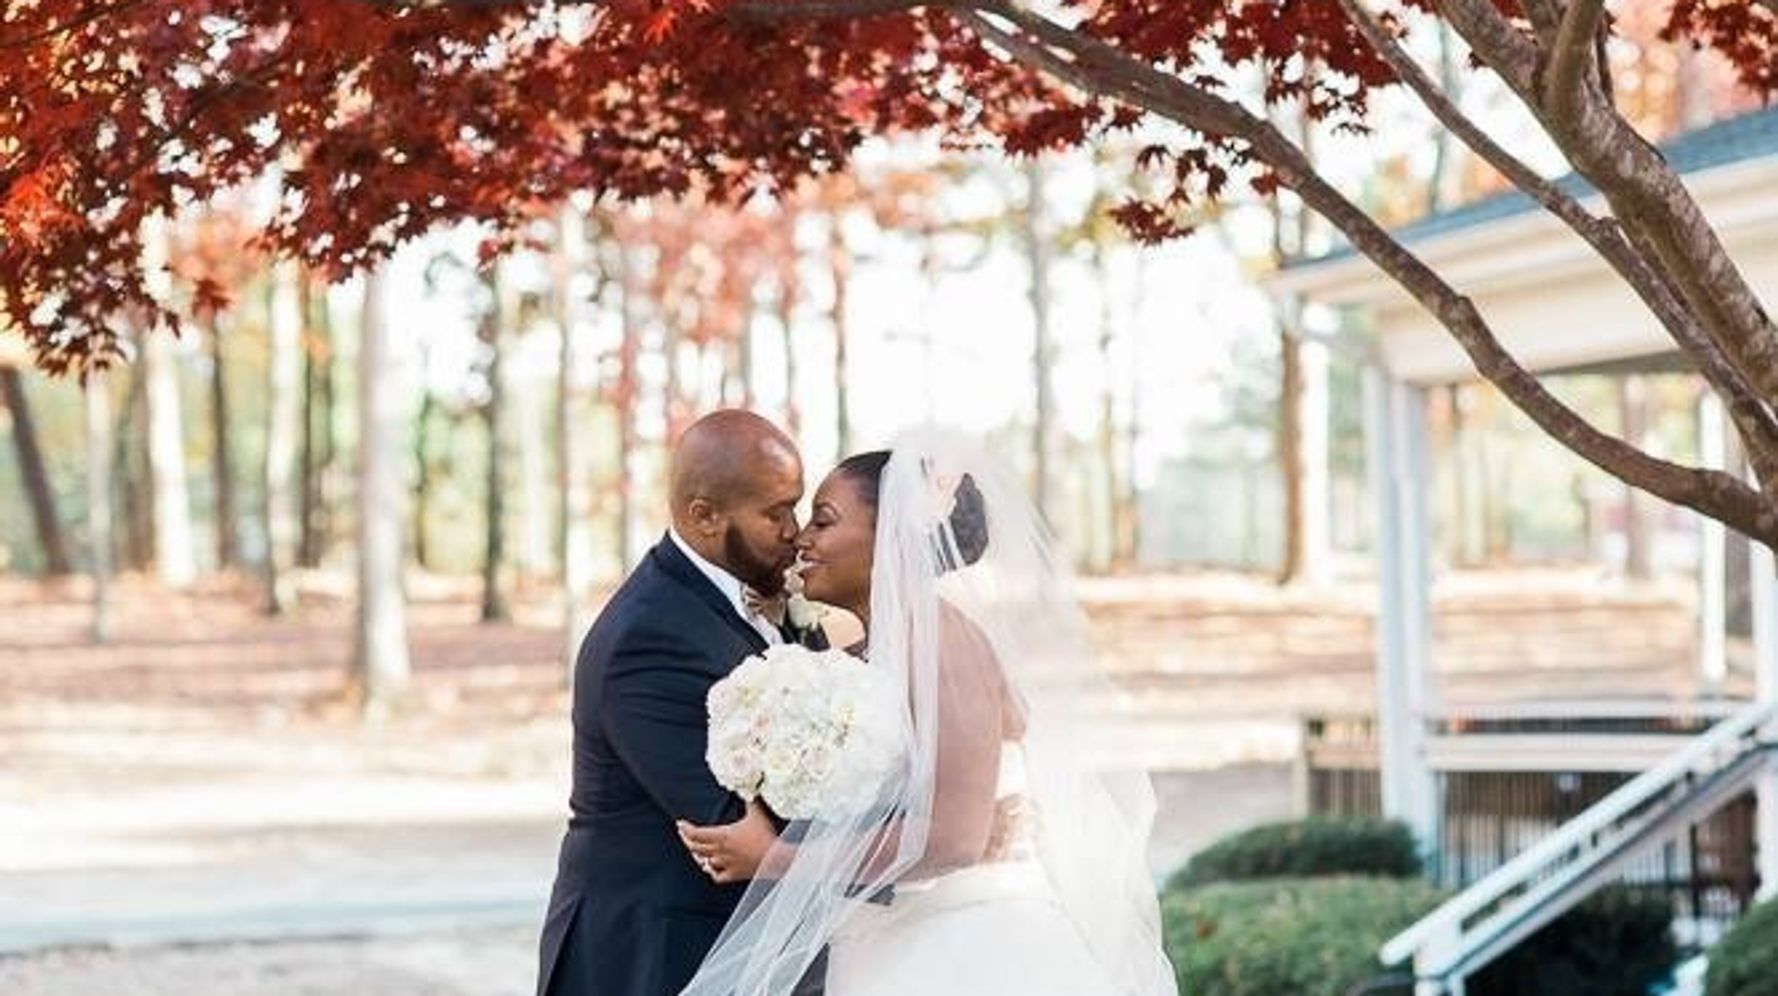 14 Thanksgiving Wedding Photos Filled With Gratitude And